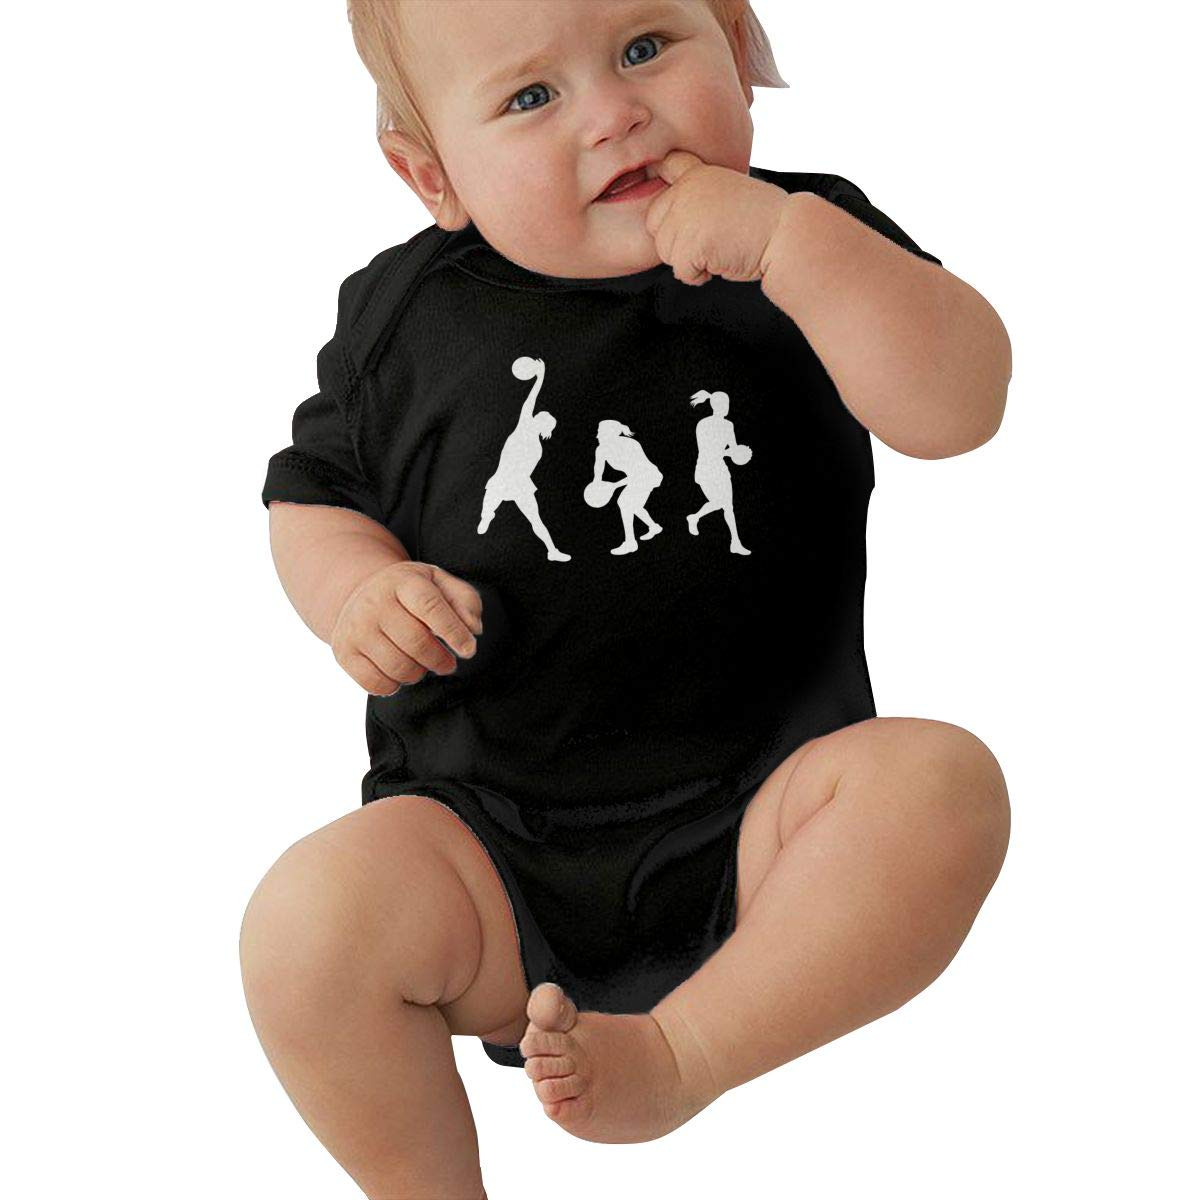 Toddler Baby Girl Boy Netball Player Catching with Ball Outfits Romper Jumpsuit Short Sleeve Bodysuit Tops Clothes